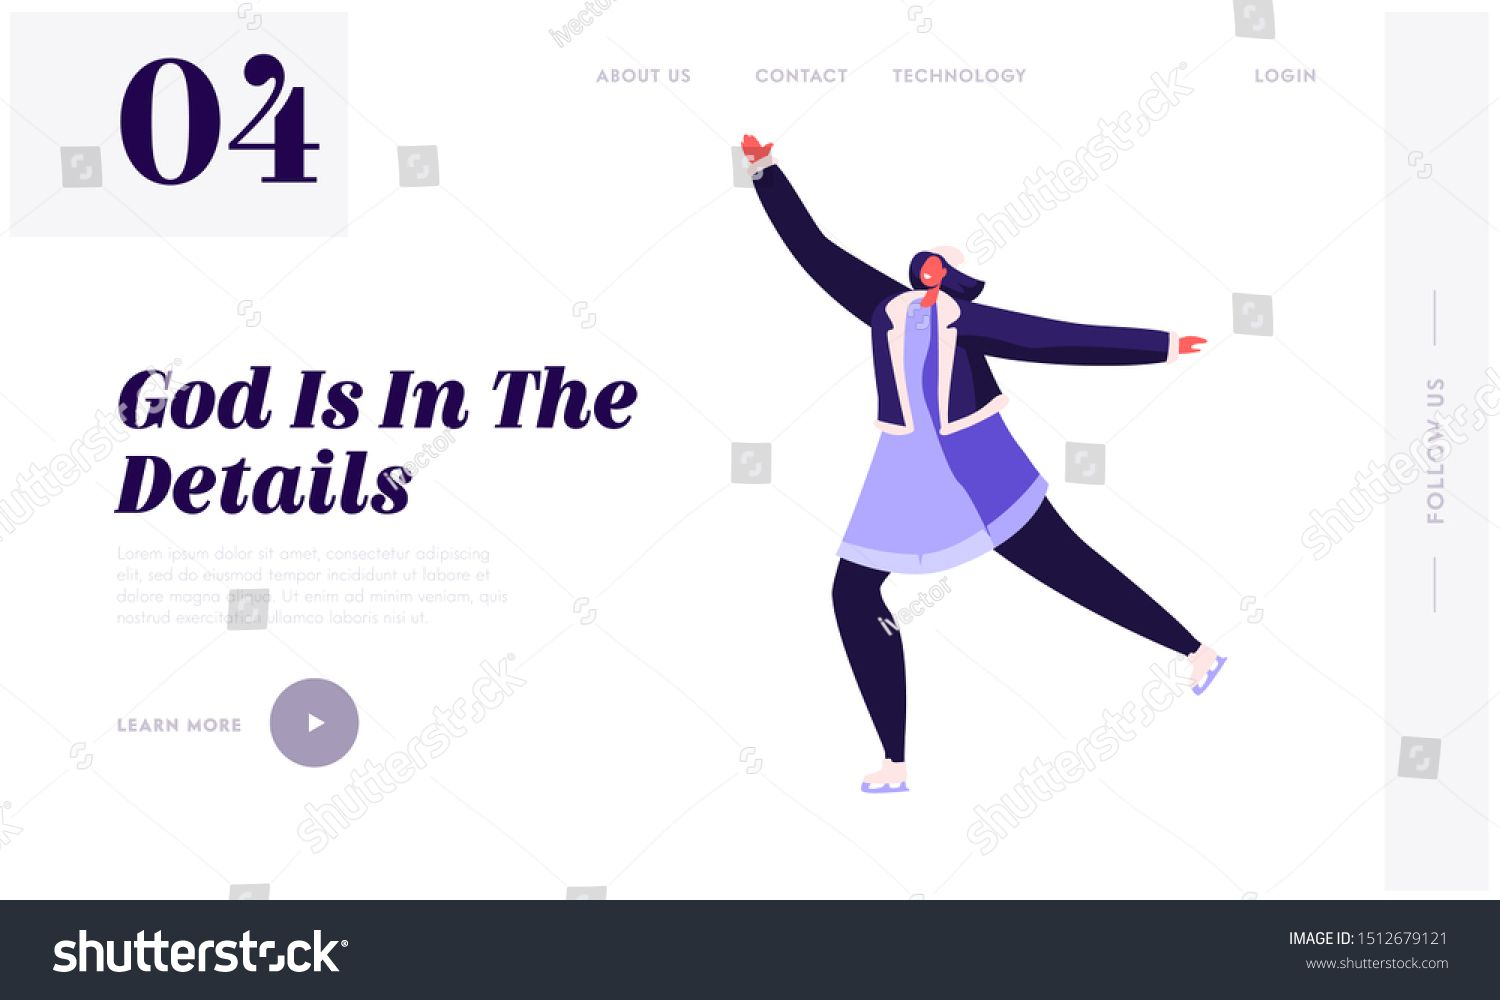 Girl Figure Dancing and Skating on Frozen Pond Website Landing Page Christmas Holidays Spare Time Amusement Happy Woman Winter Outdoor Activities Web Page Banner Cartoon...